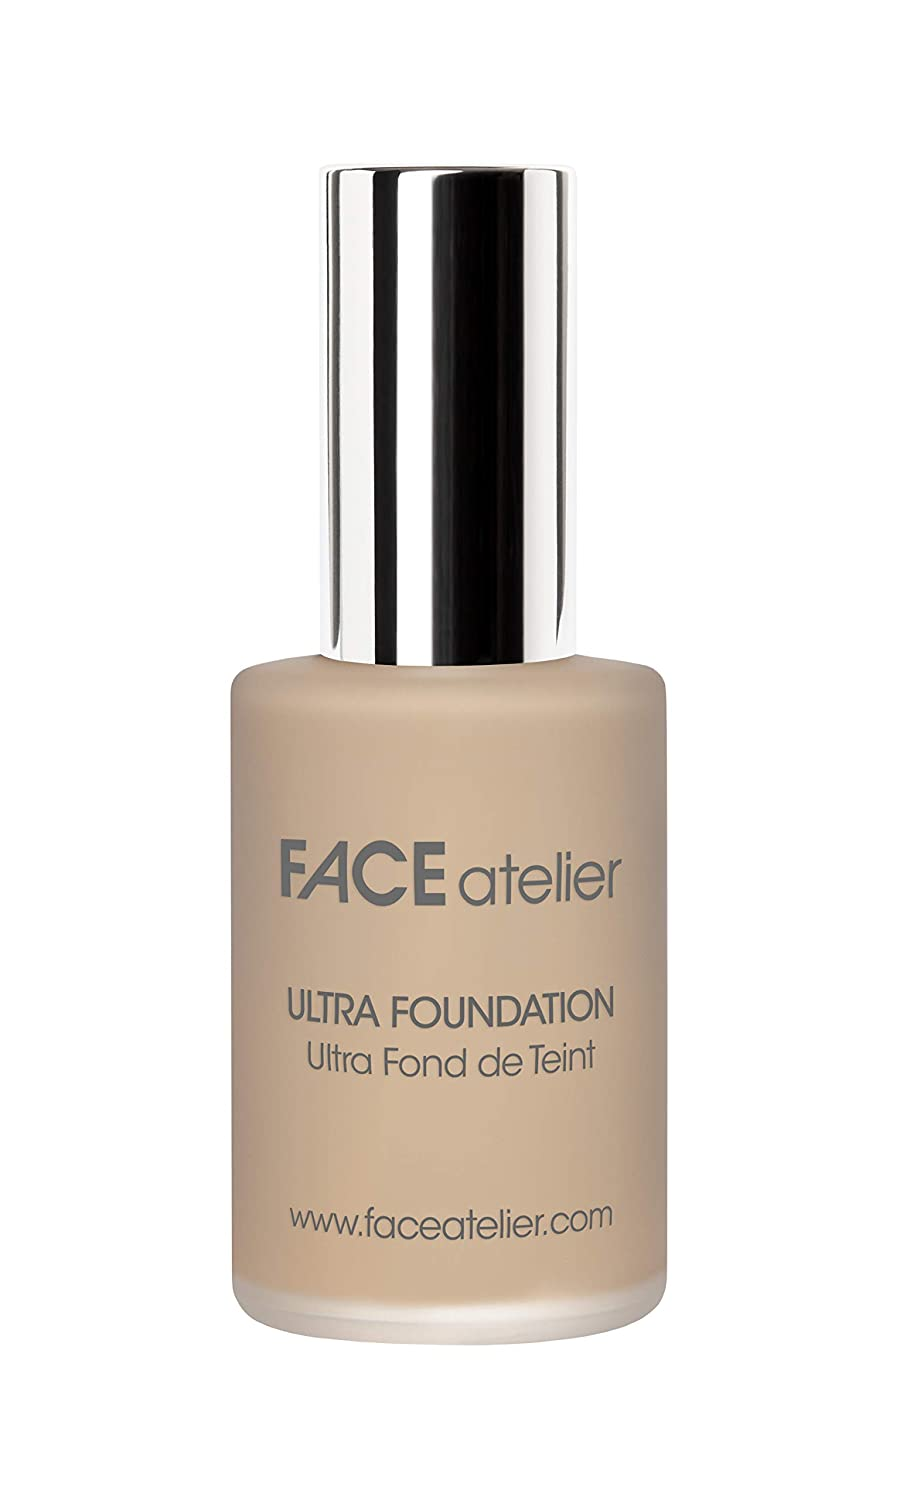 B00359UYUY FACE atelier Ultra Foundation Wheat - 3 61O5k95nG5L